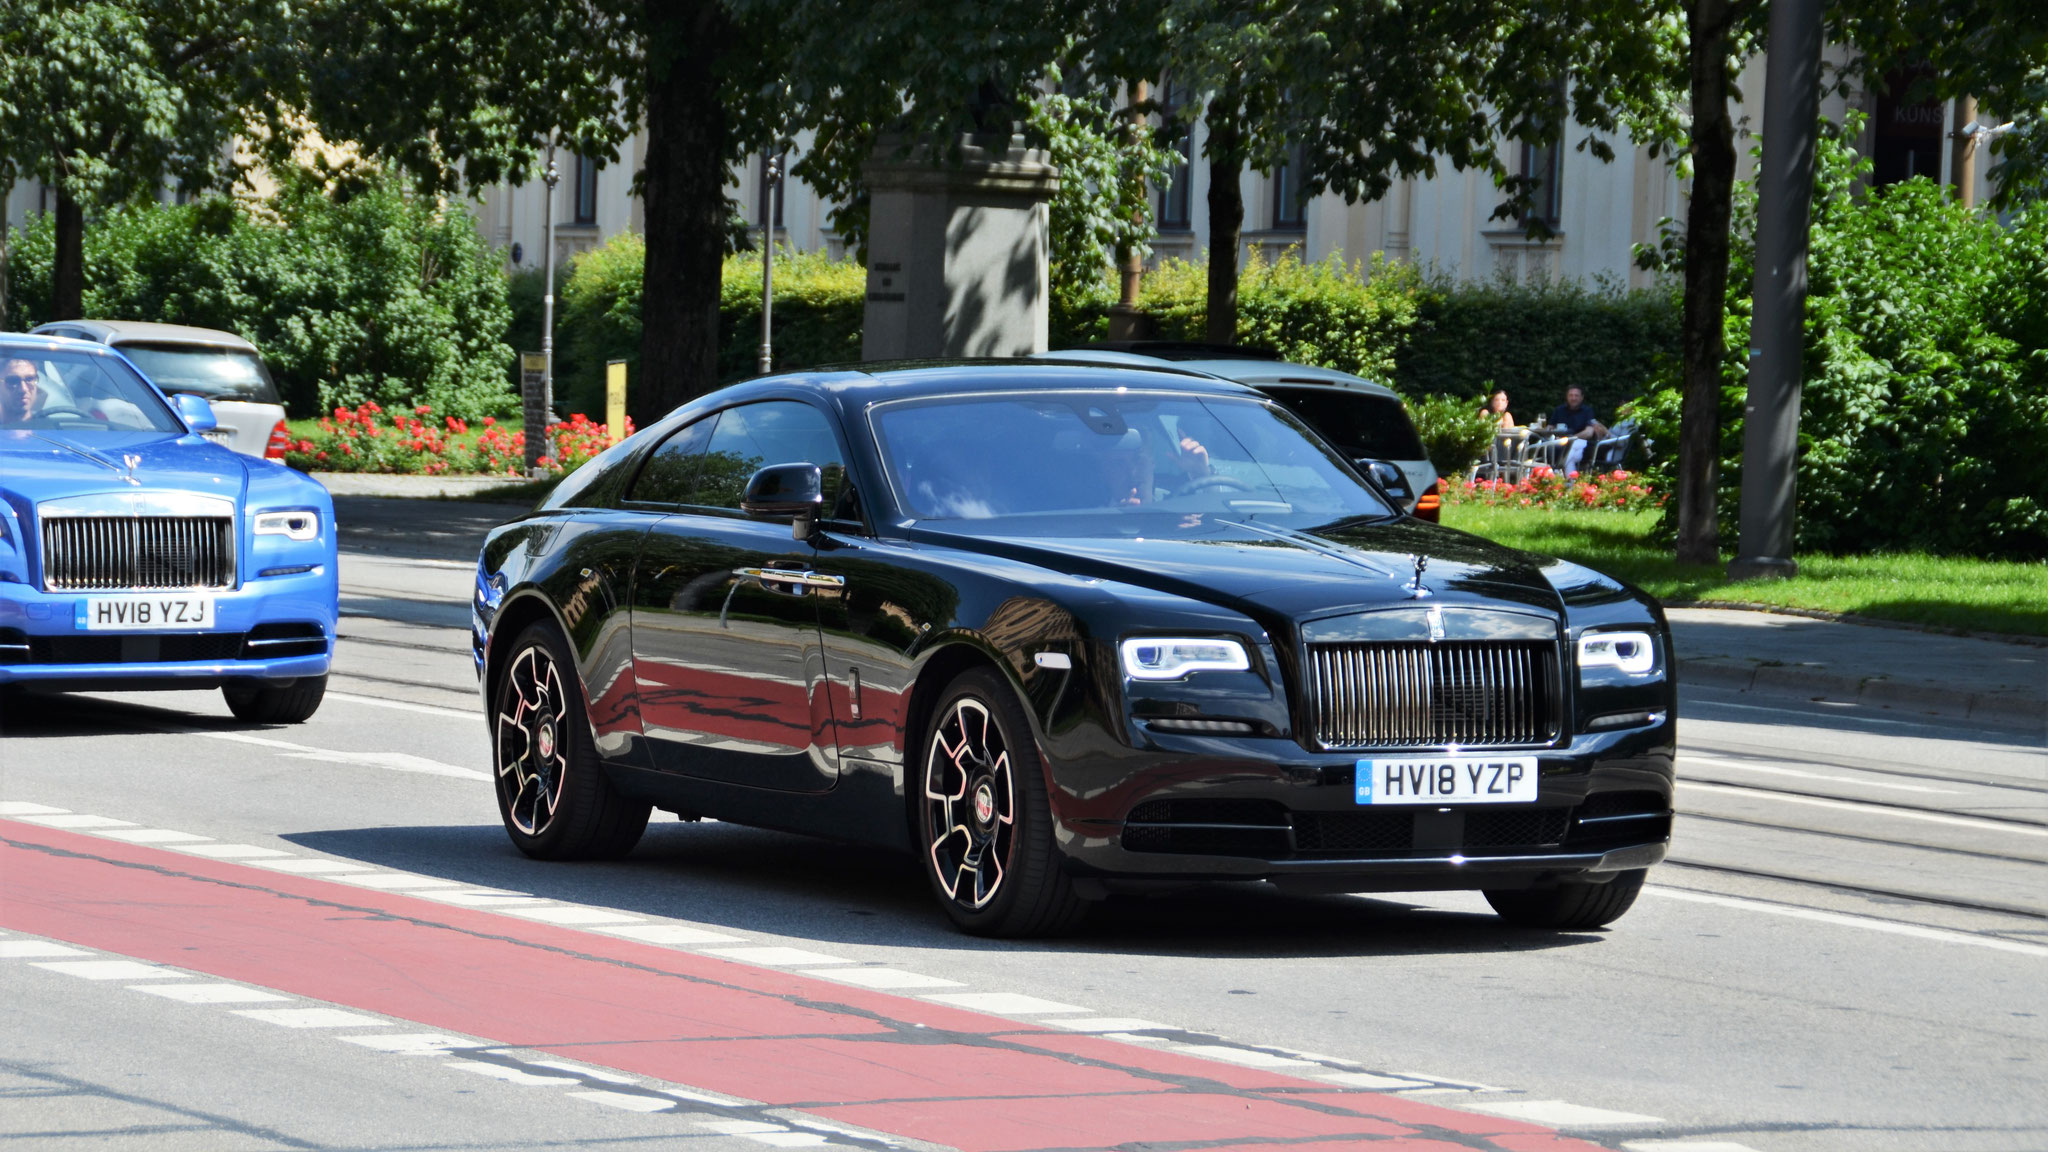 Rolls Royce Wraith Black Badge - HV18-YZP (GB)